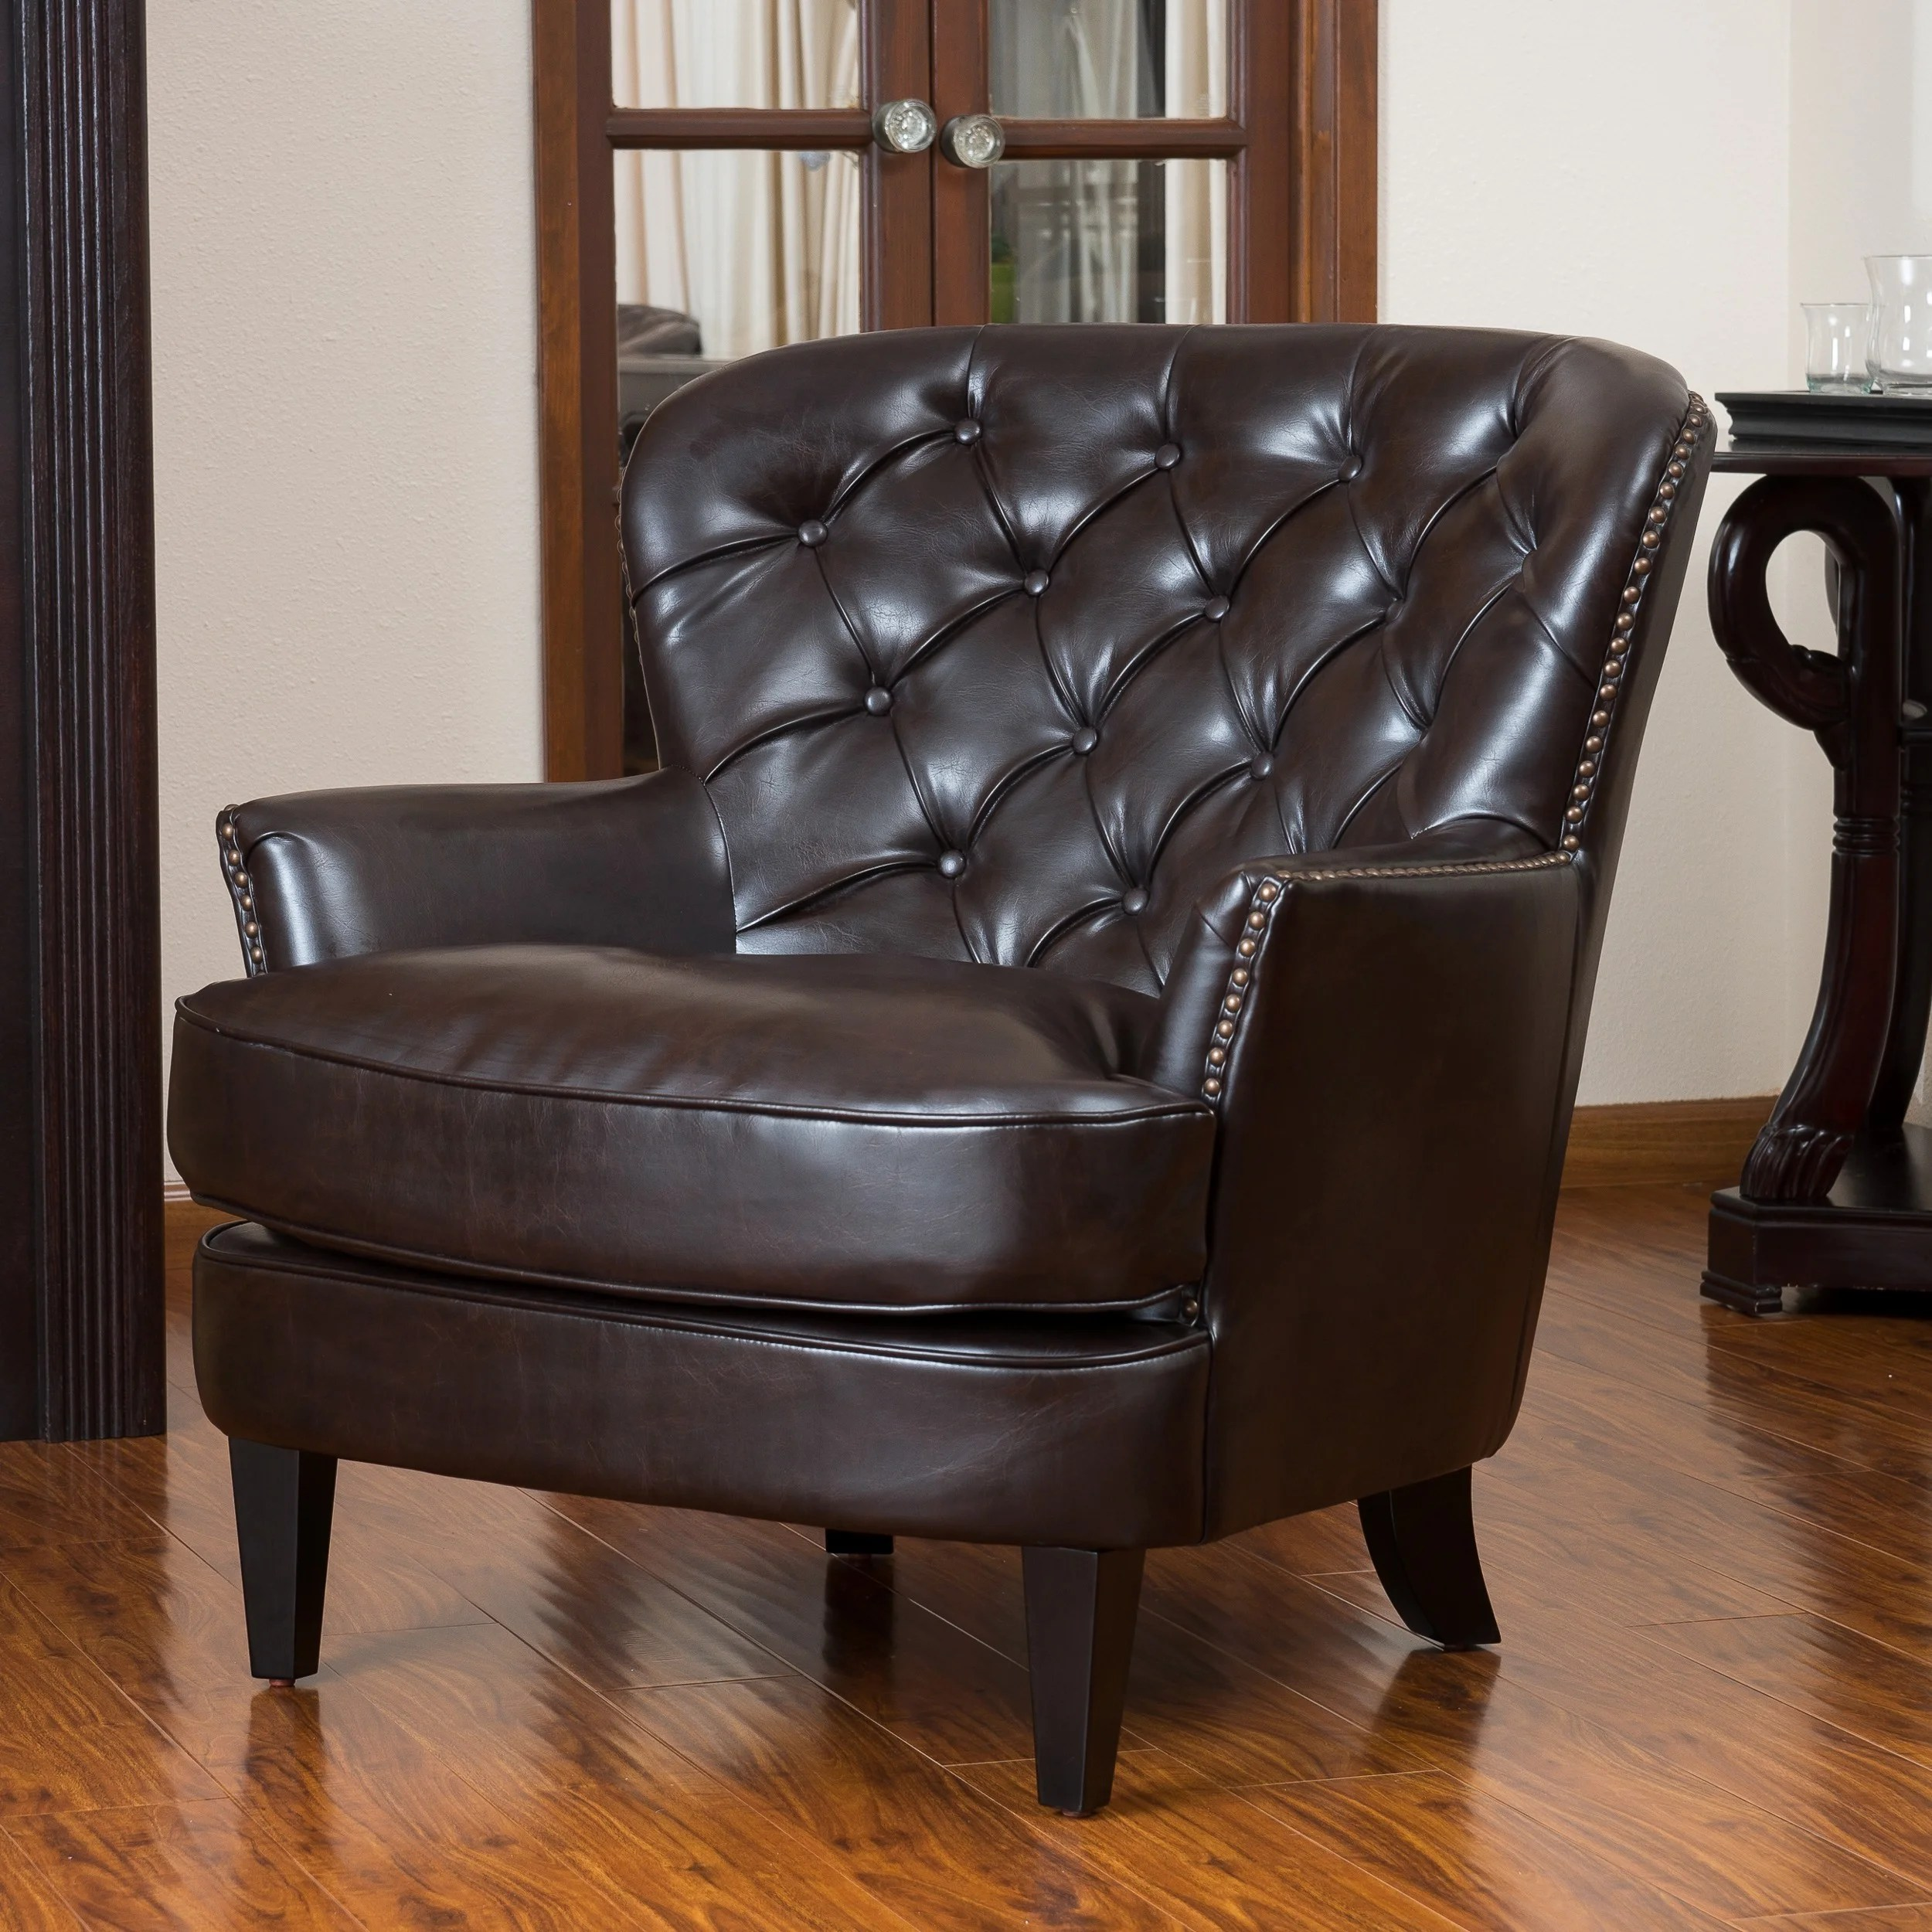 Overstock Chairs Christopher Knight Home Tafton Tufted Brown Leather Club